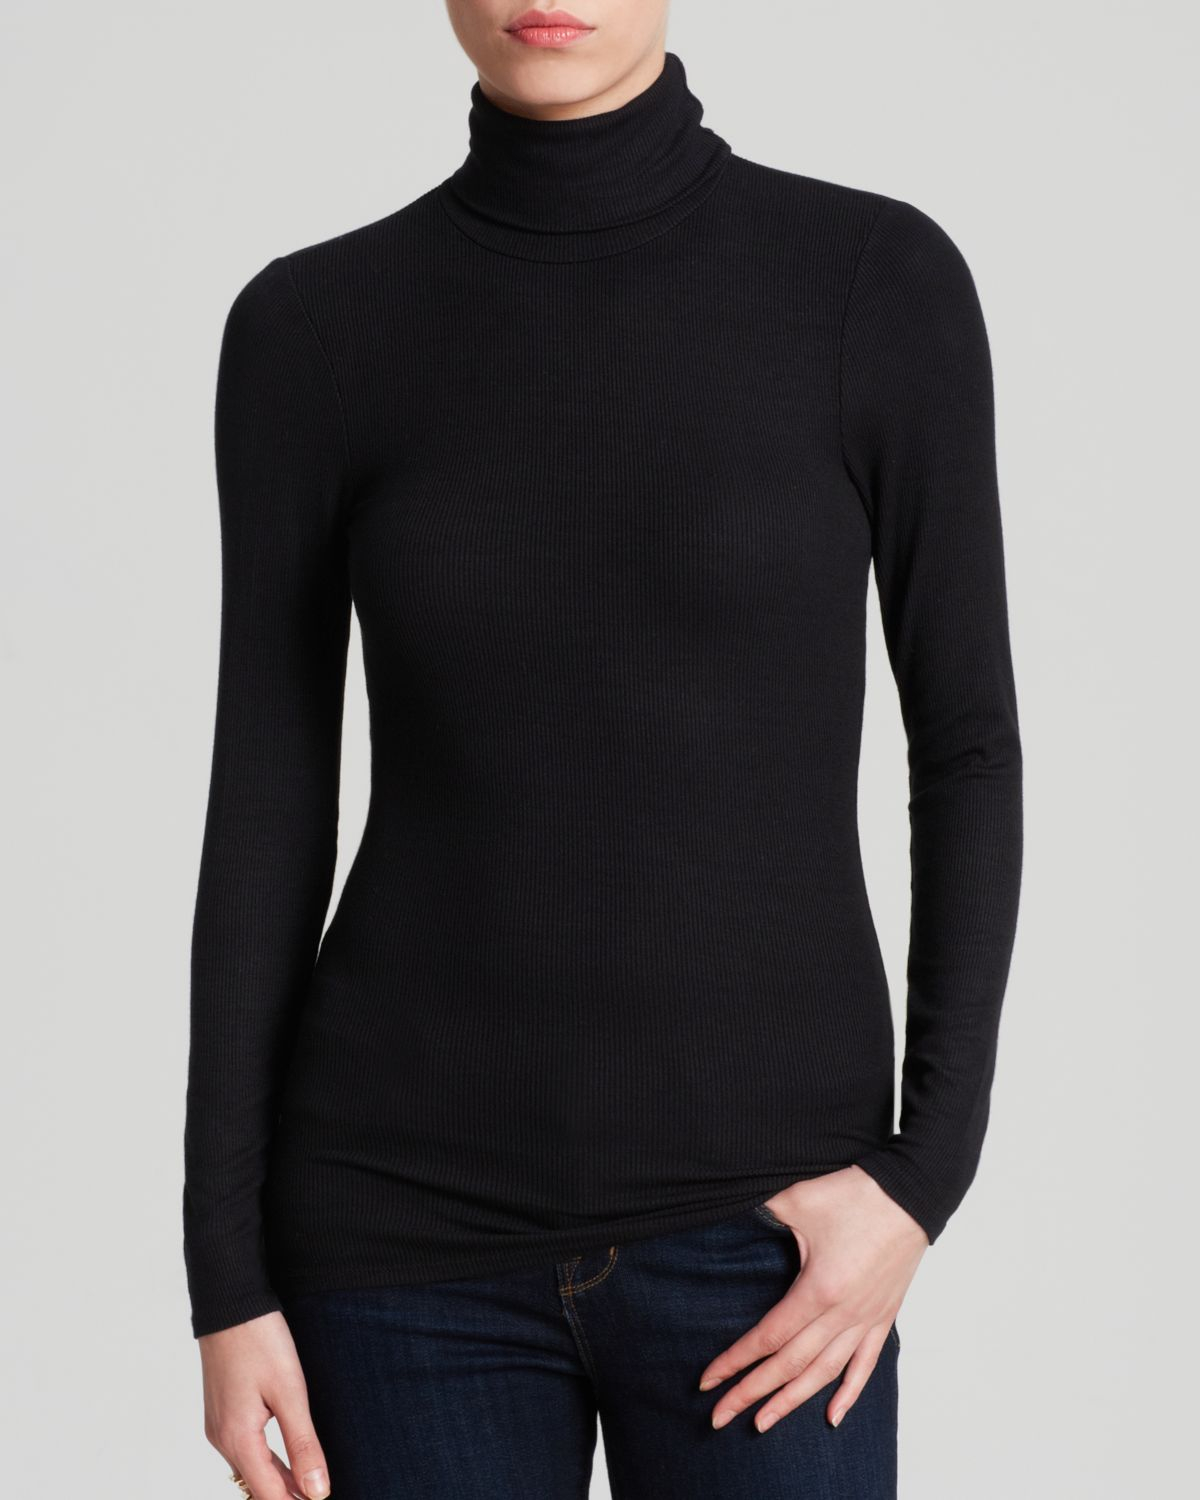 Turtleneck Black Shirt | Is Shirt